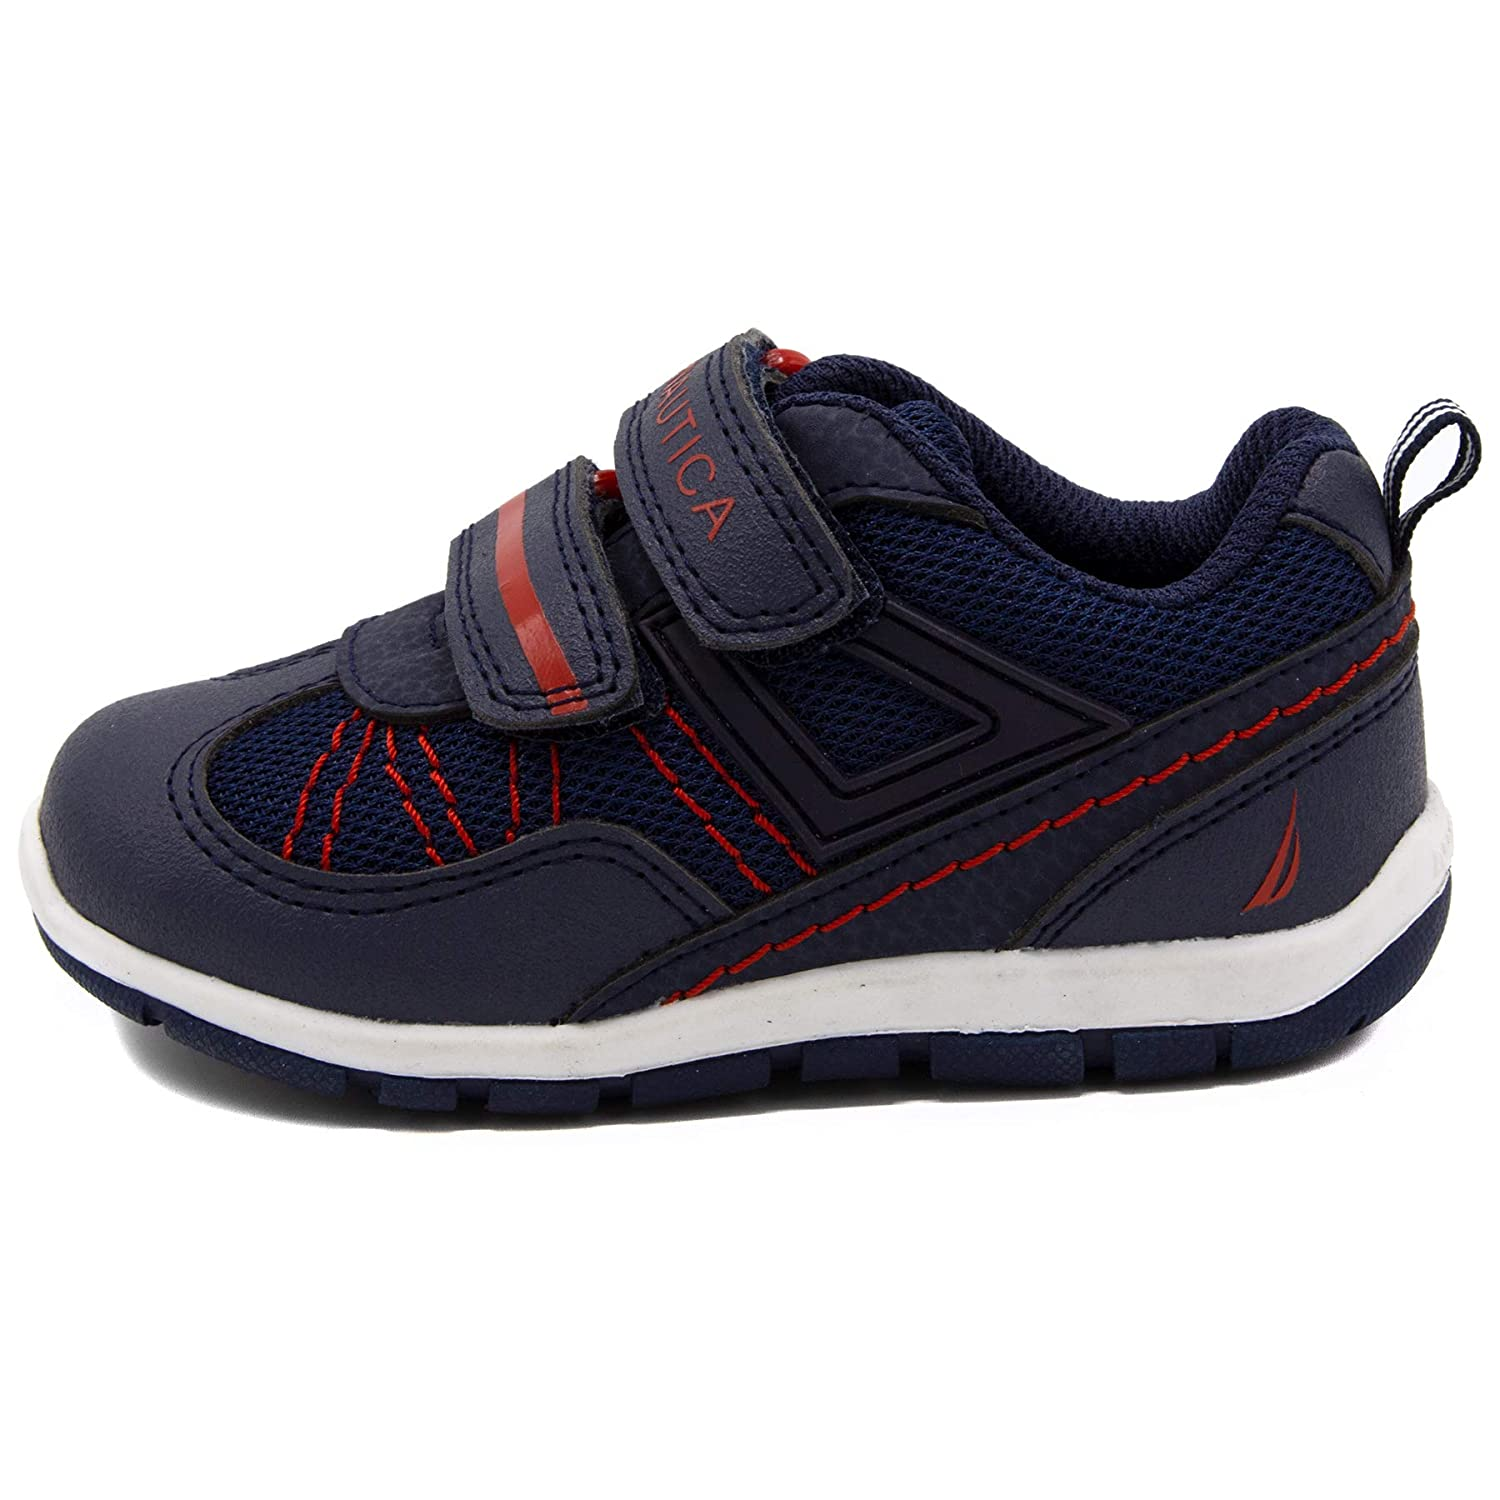 Toddler//Little Kid Nautica Kids Sneakers Double Strap Casual Athletic Shoes